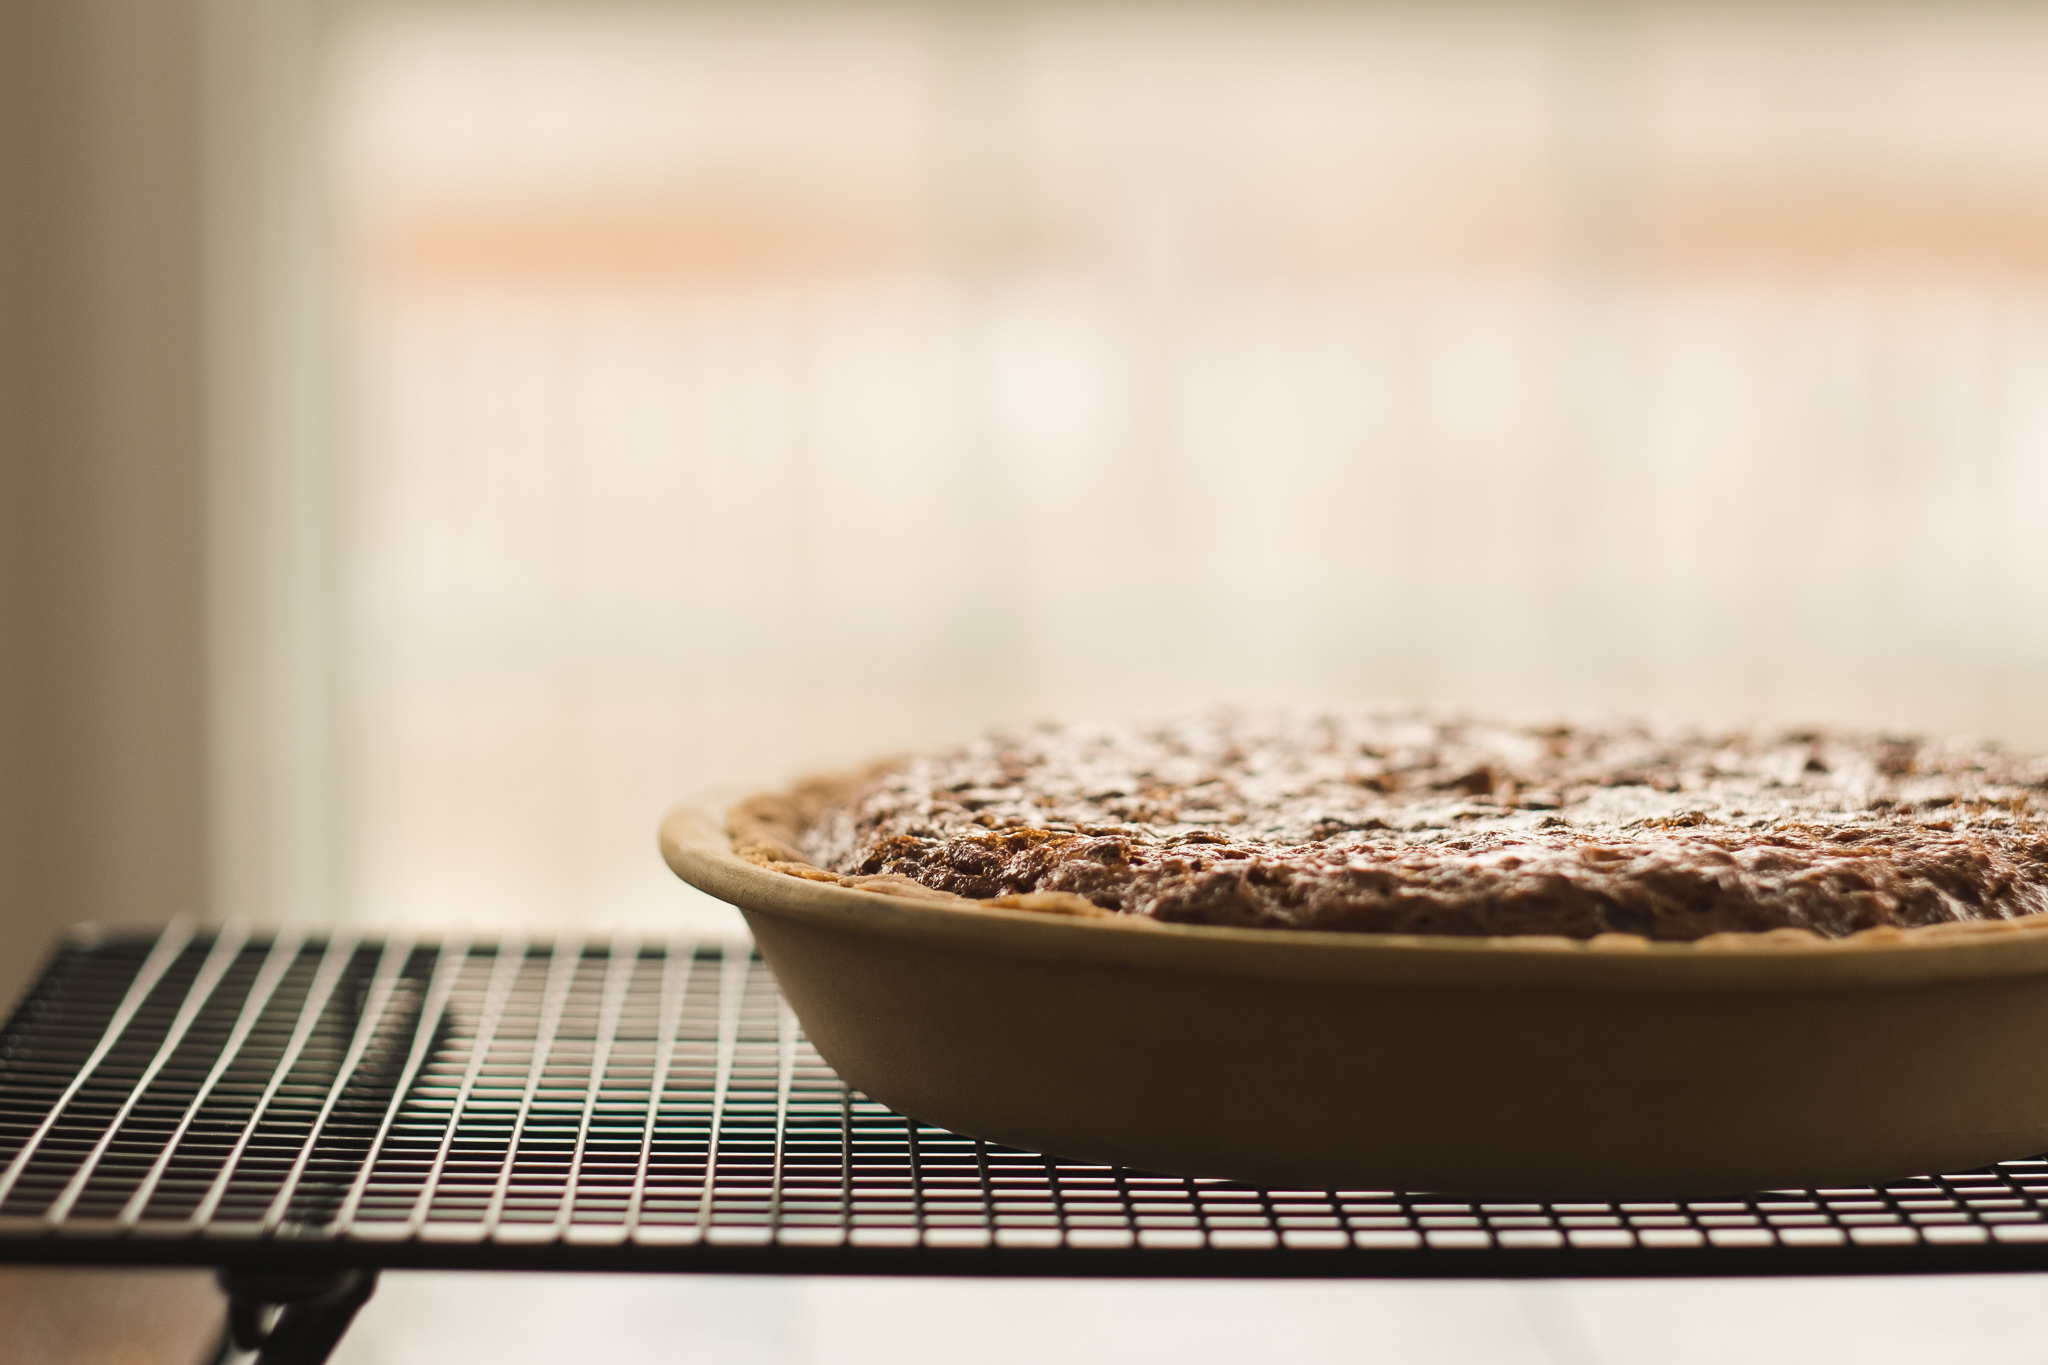 Pecan Pie for Pi Day